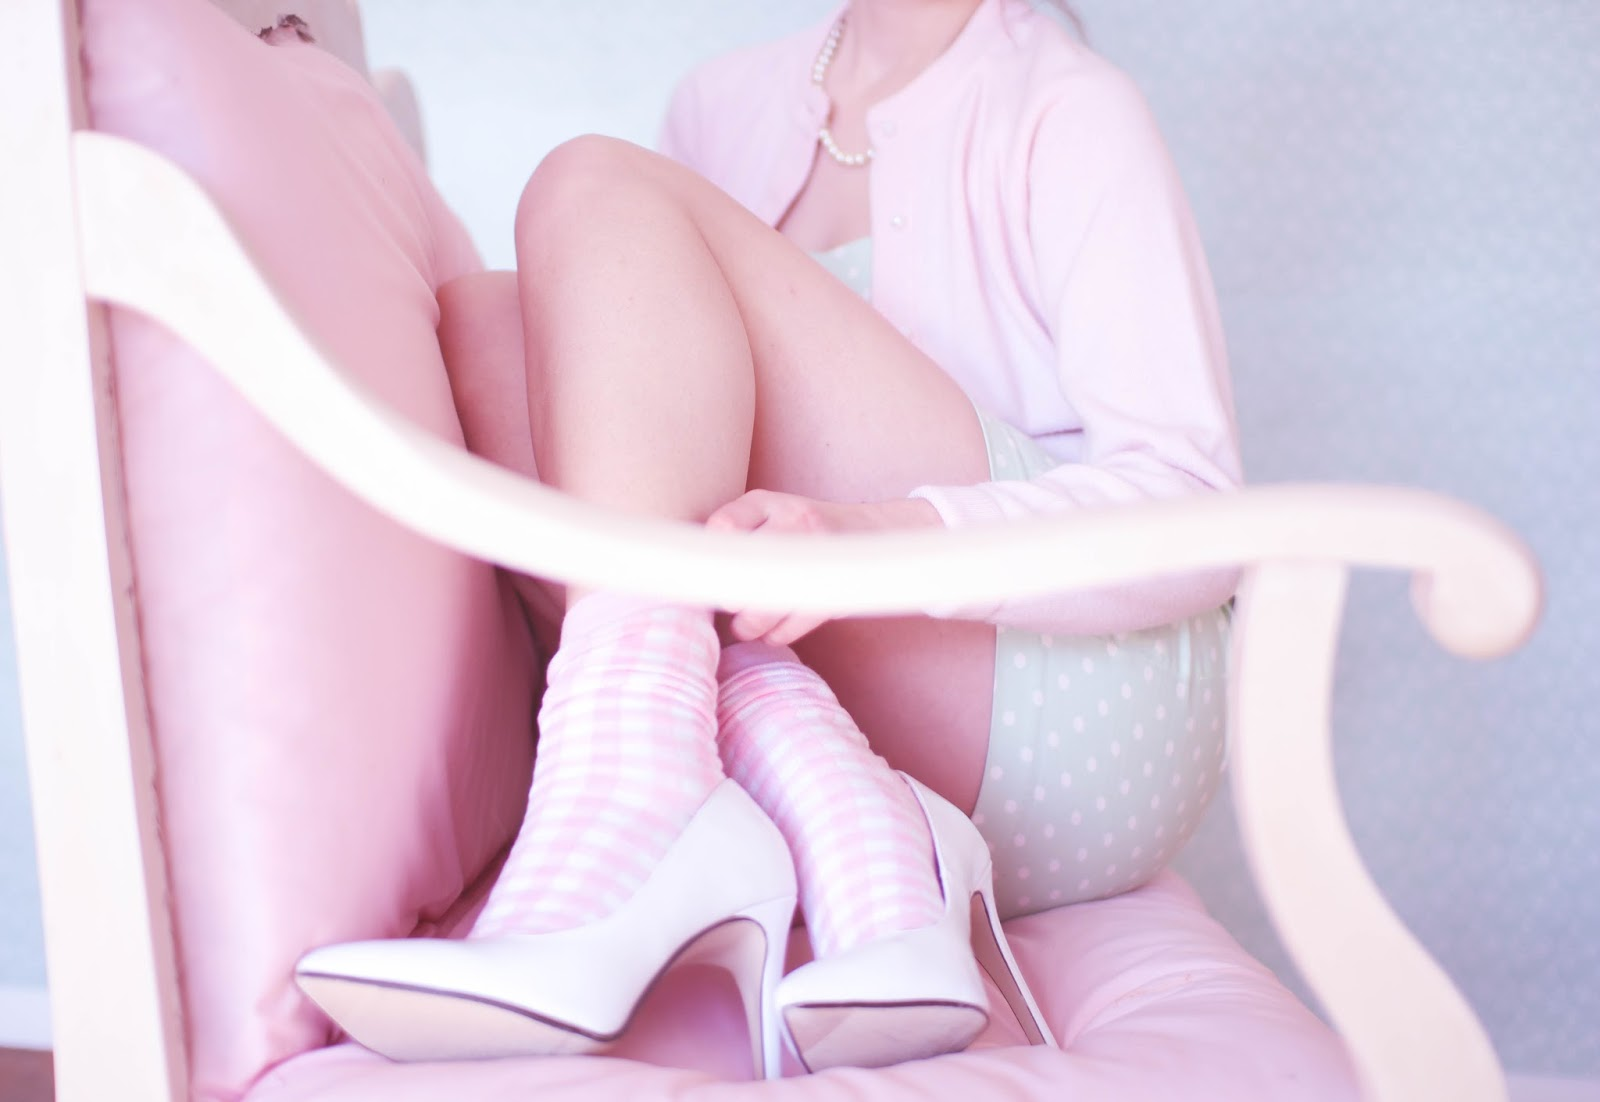 Retro, pastel, outfit, pink, green, mixed prints, cotton candy, girly, Drive, drive movie, femme fatale, sweet, vintage, DIY, backdrop